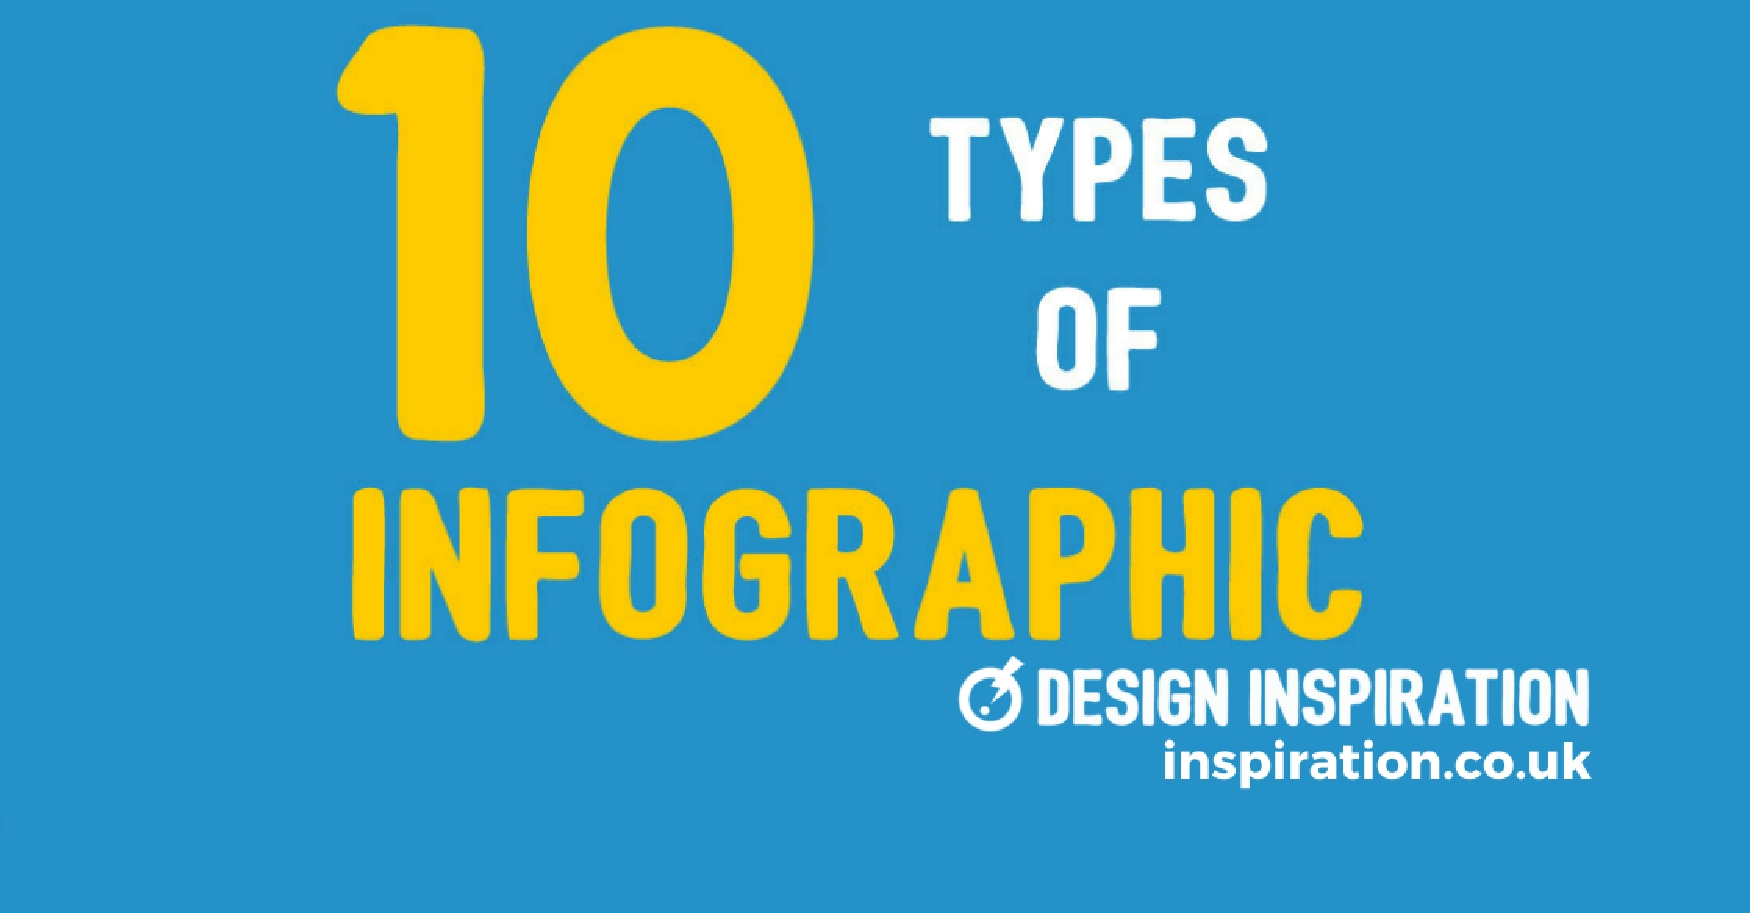 10 types of infographic | design inspiration